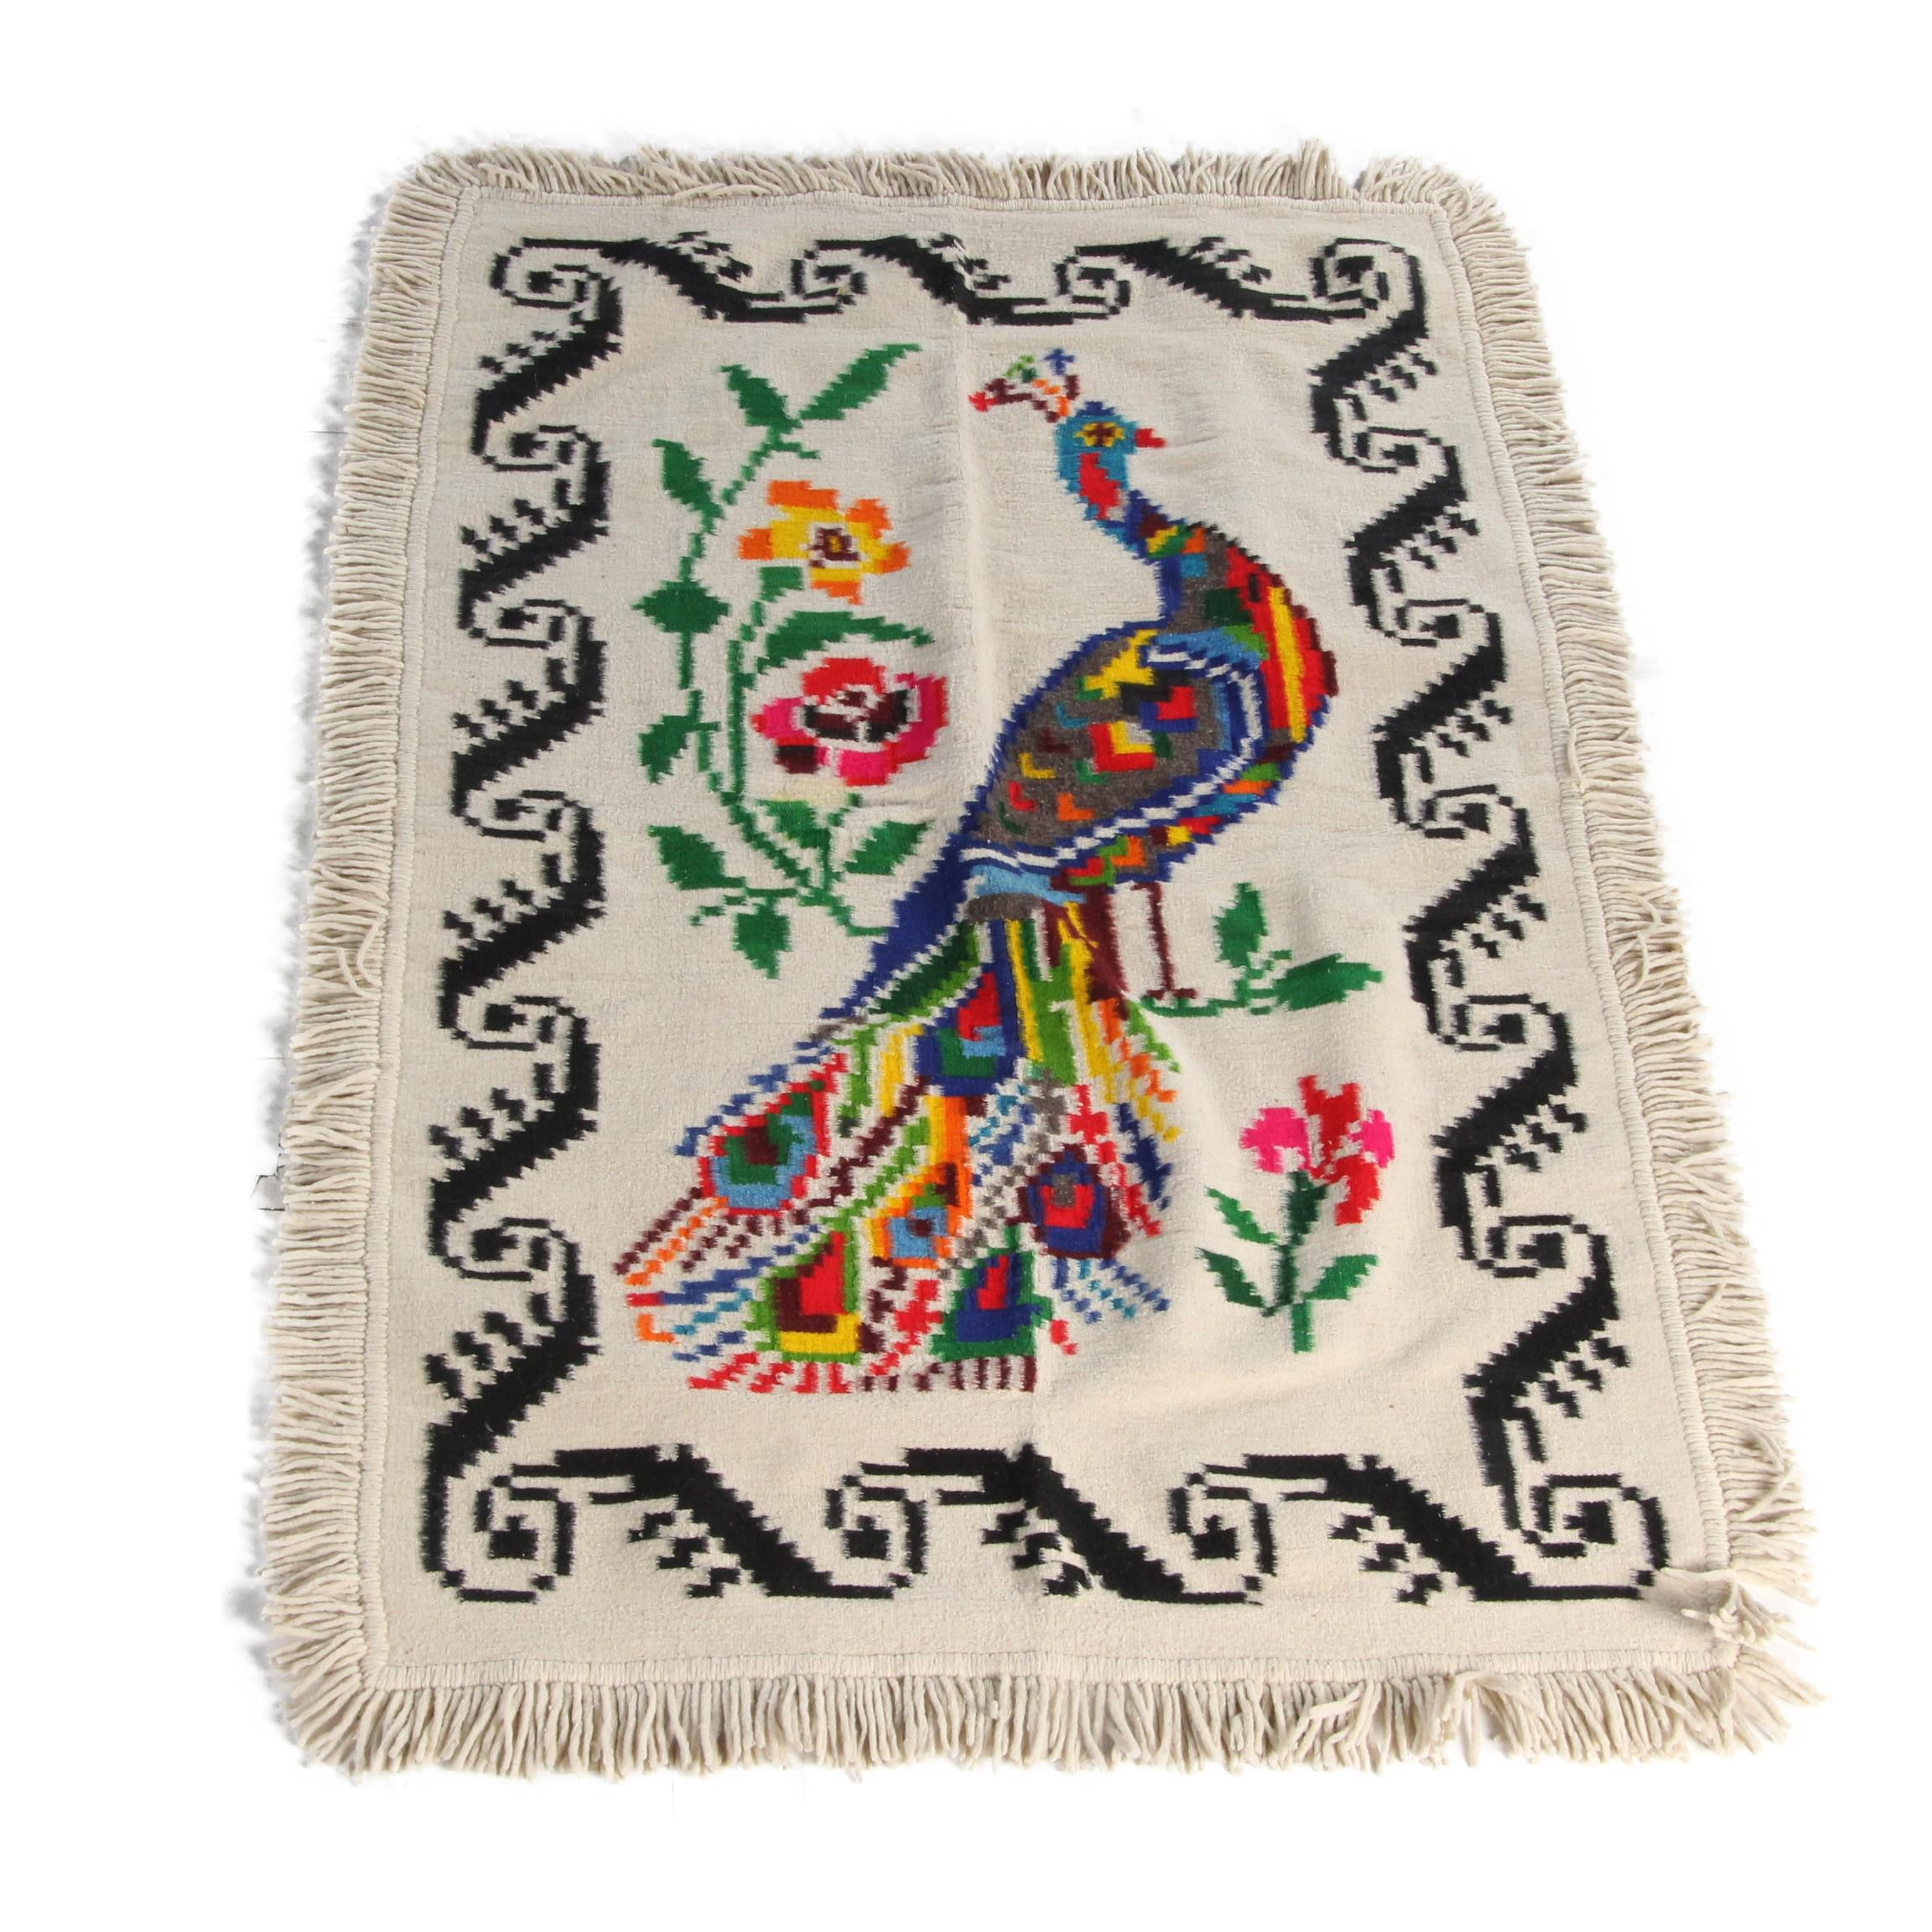 Handwoven Pictorial Wool Area Rug/Blanket